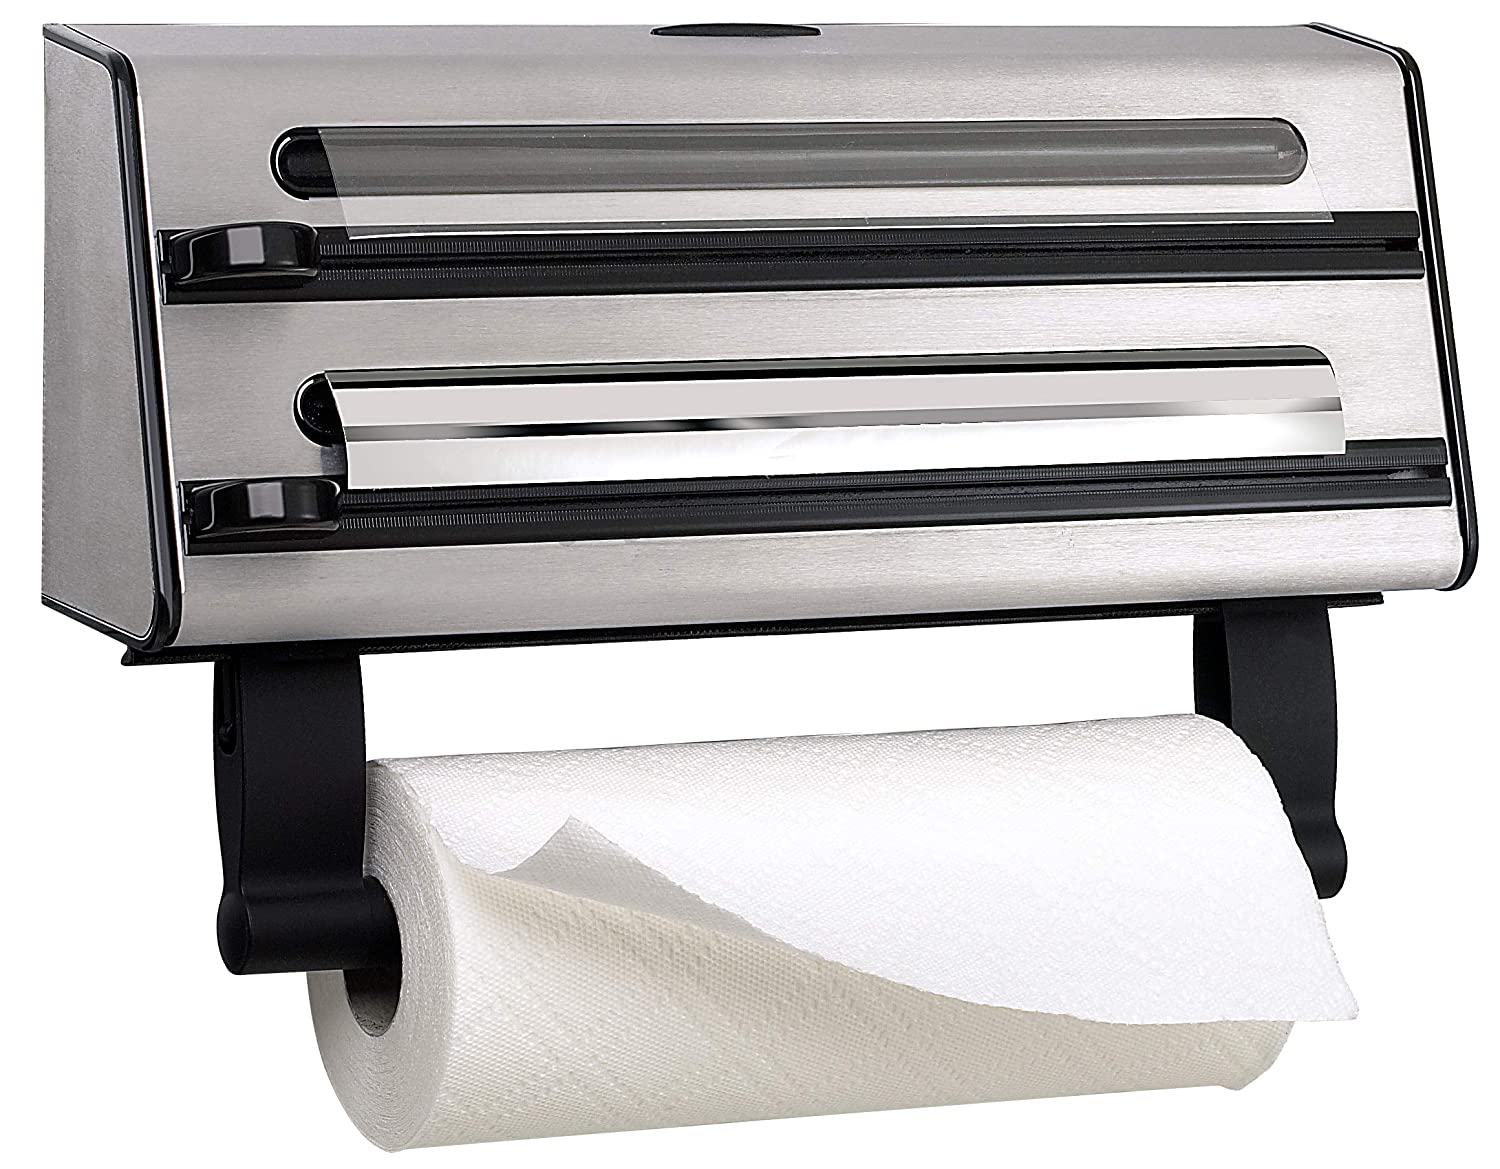 Contura - Triple Roll Dispenser for foil, cling film and paper towel. EMSA 504180